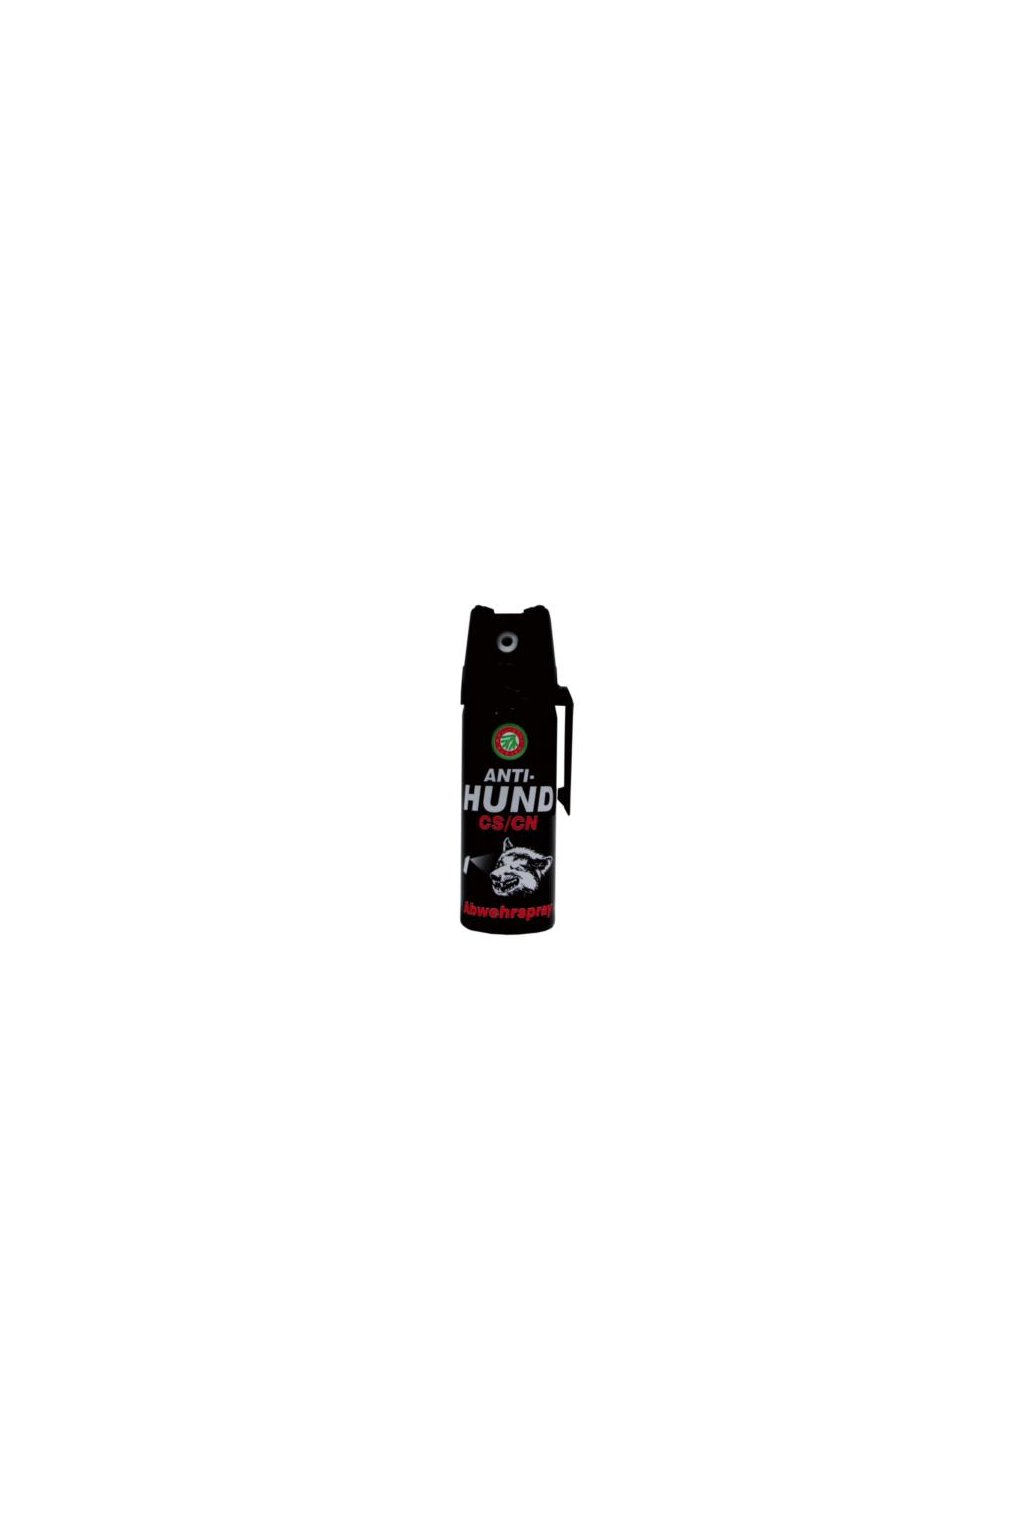 ballistol anti dog defense spray